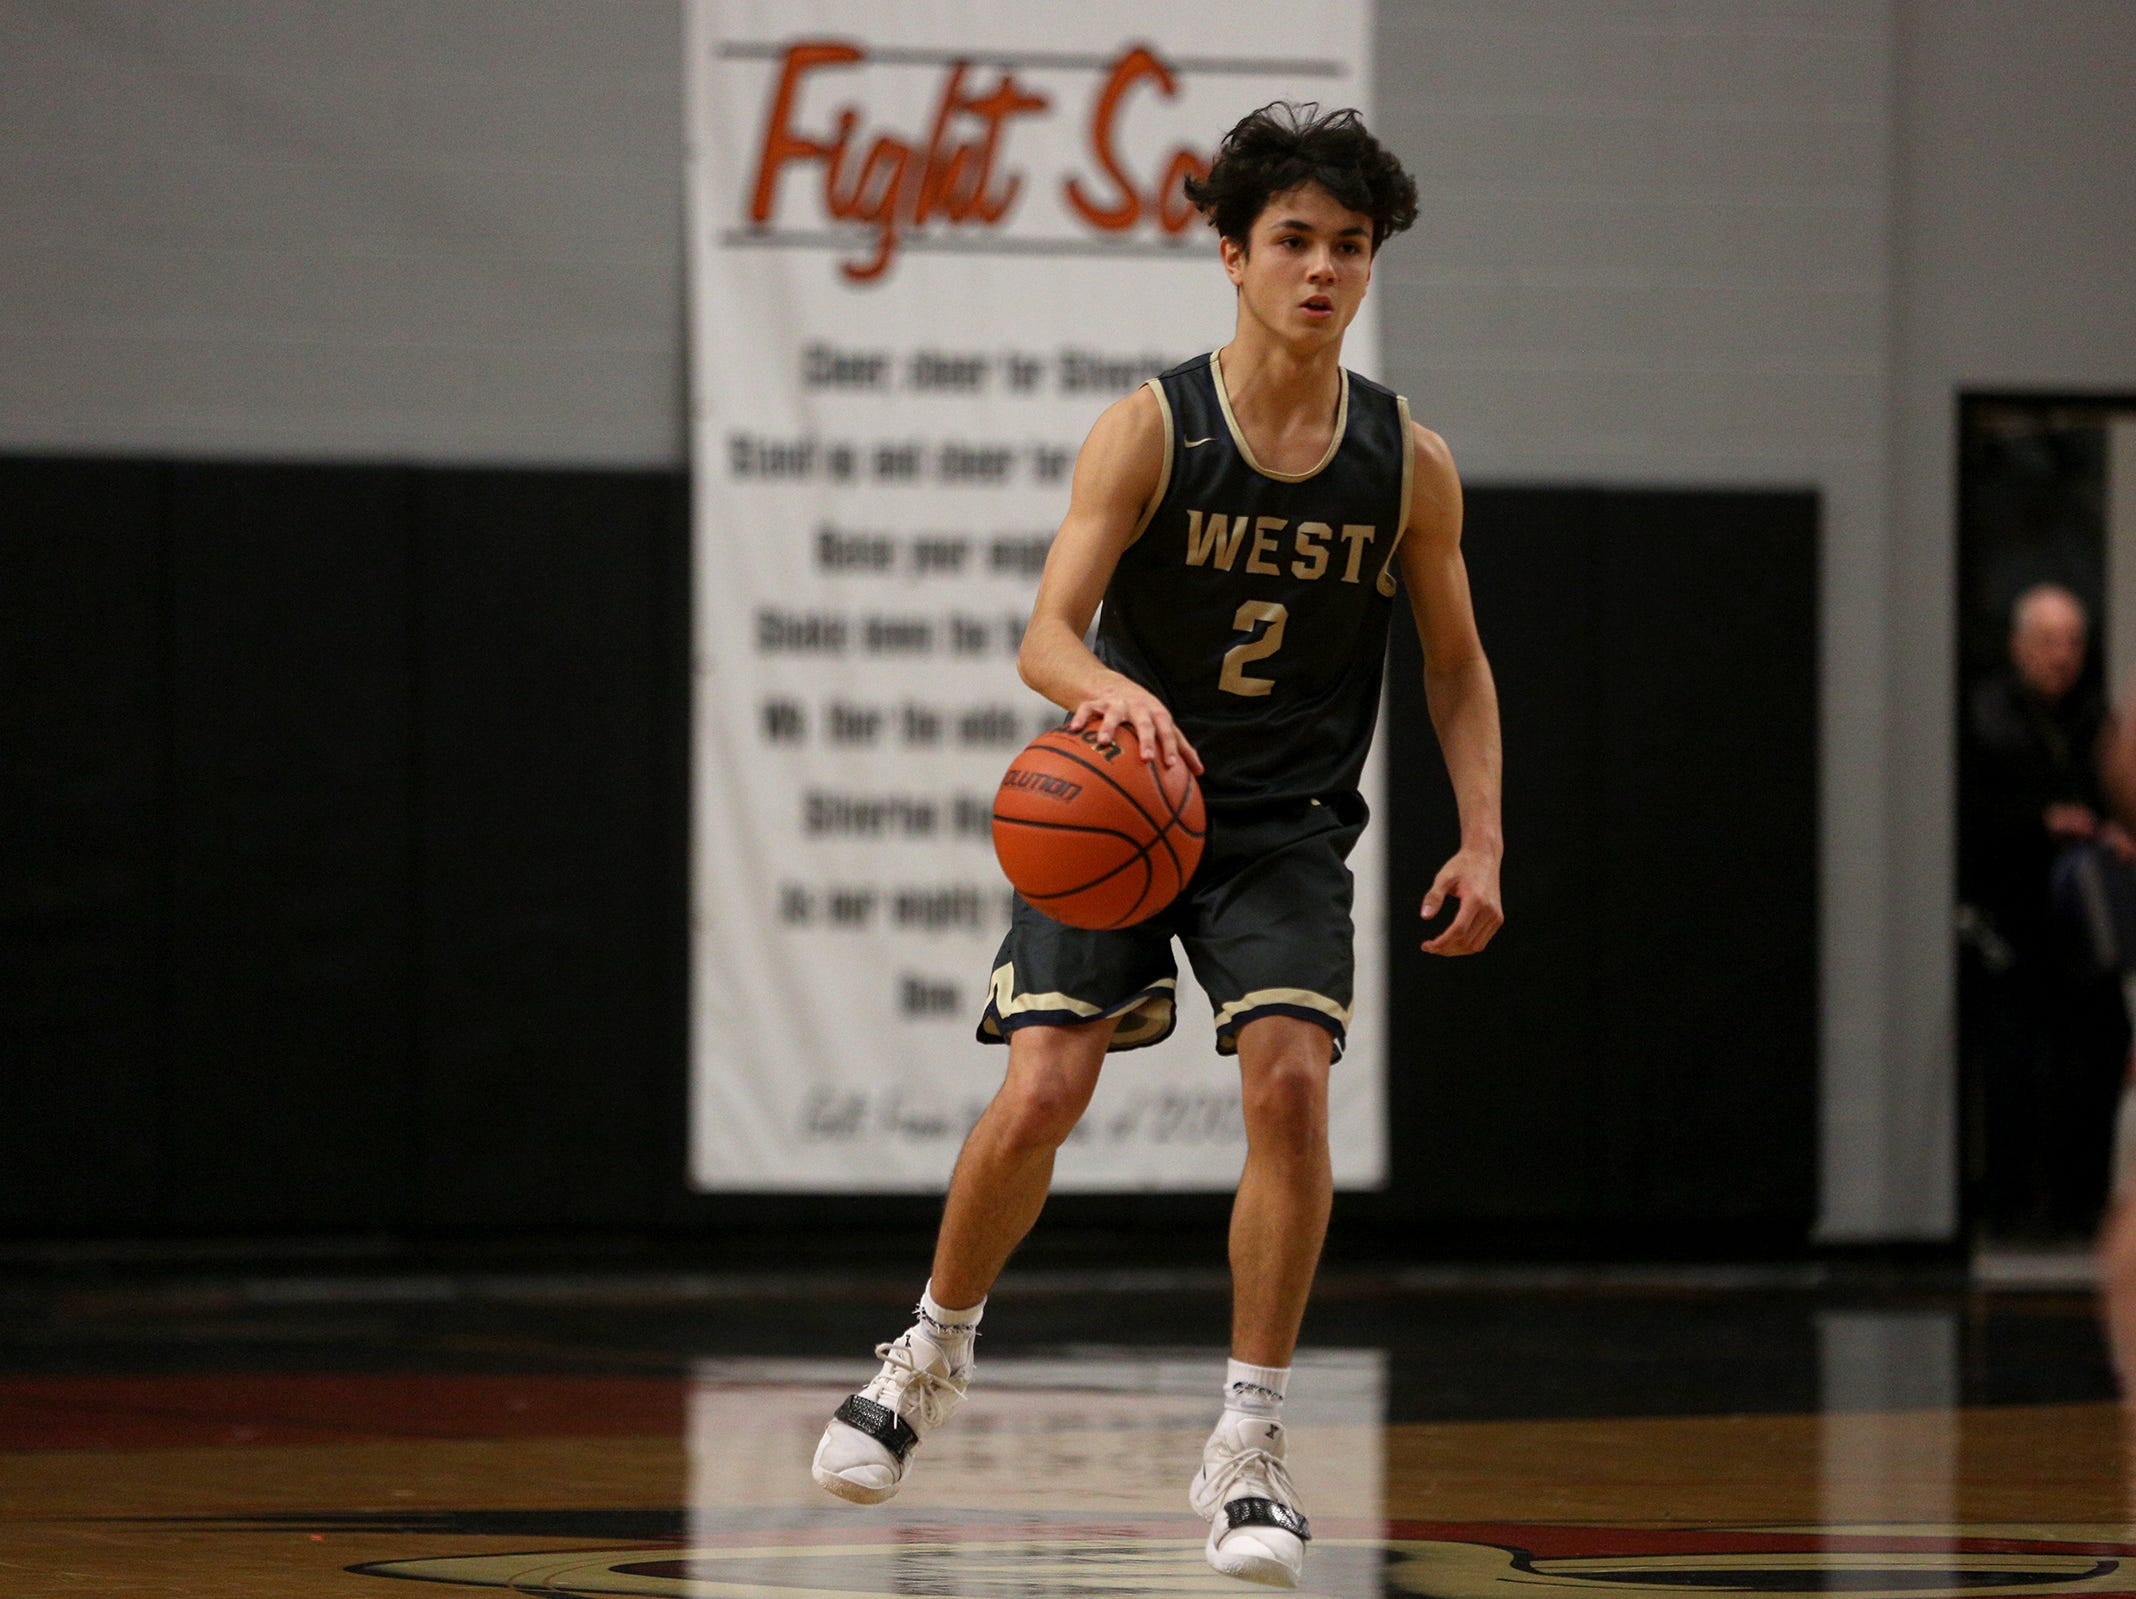 West Albany's Koby Ruiz (2) during the West Albany vs. Silverton High School boys basketball game in Silverton on Friday, Jan. 25, 2019.